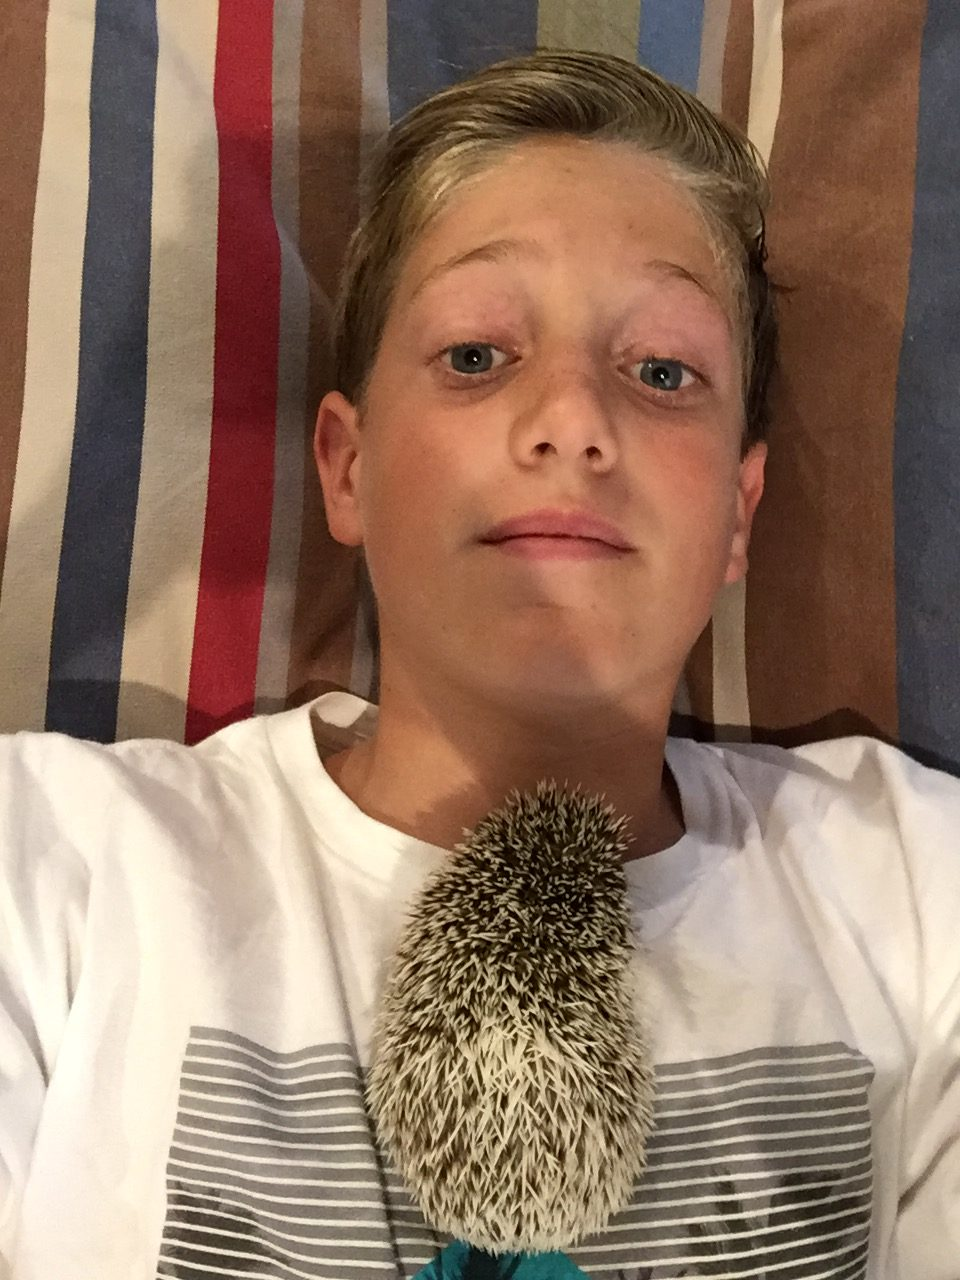 Carter Cohen, a boy from Coronado, California, who convinced his parents to let him buy a hedgehog by preparing a slide presentation